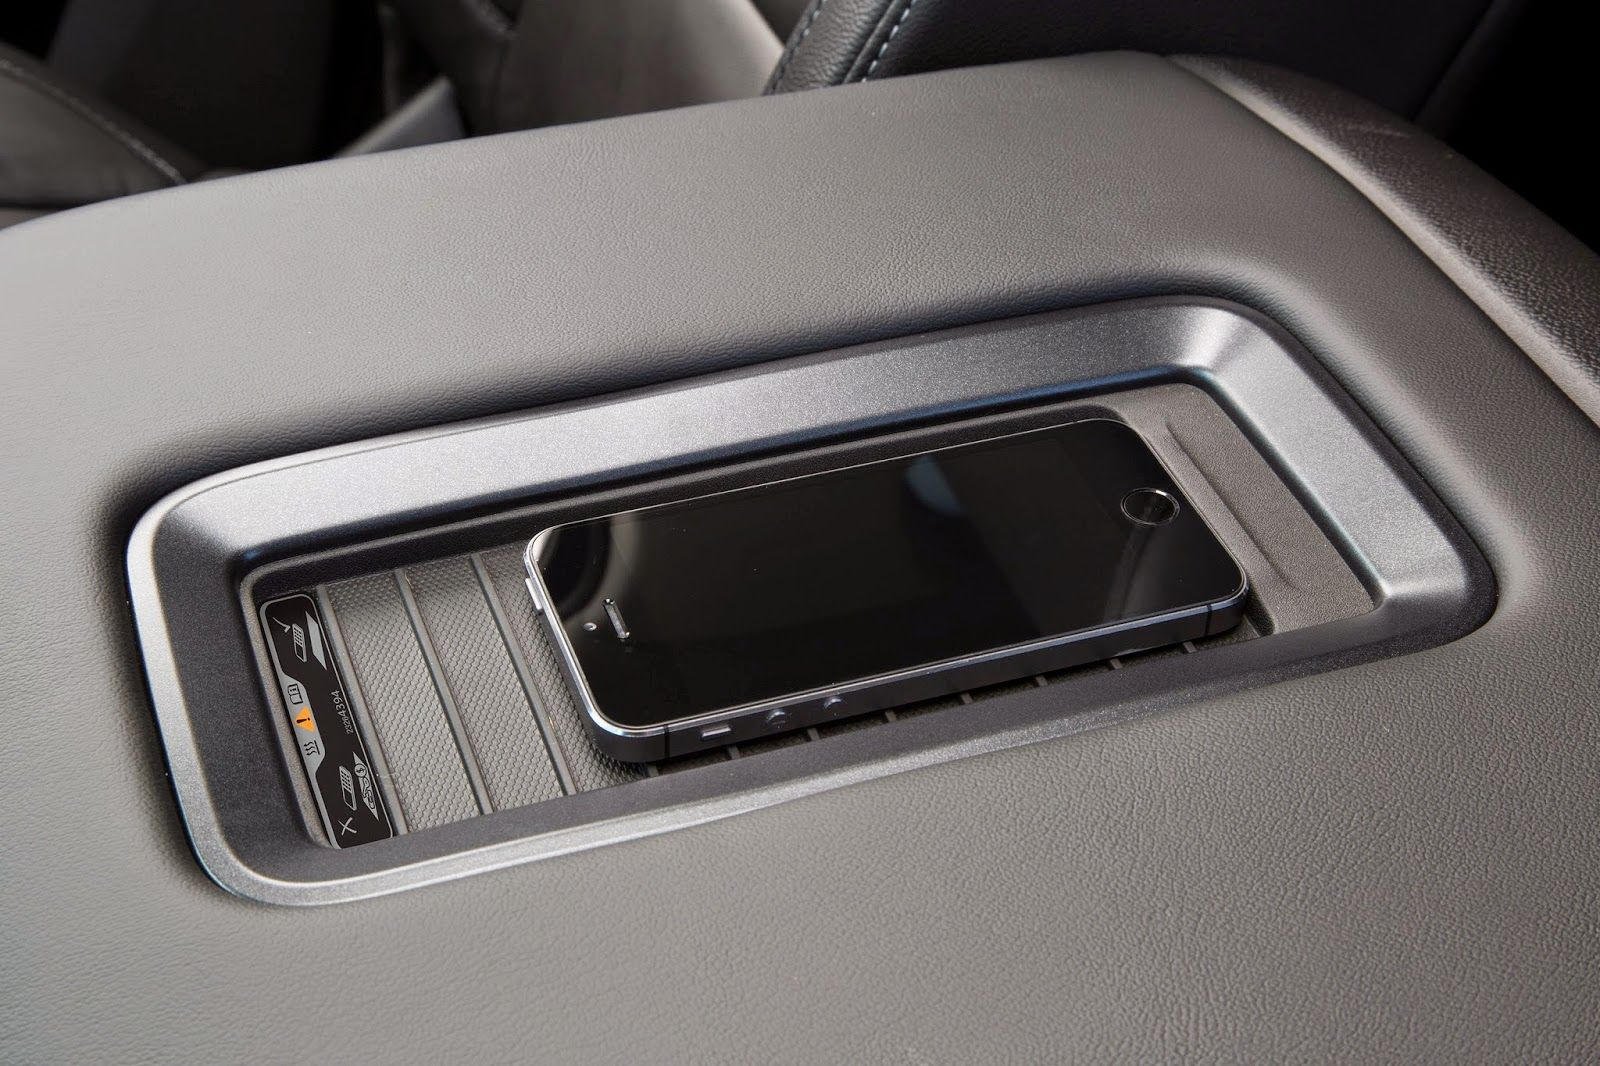 Wireless Charging Station 2015 Chevrolet Tahoe Suburban Z71. Wireless Charging Station 2015 Chevrolet Tahoe Suburban Z71 Package Details. Chevrolet. 2016 Chevy Tahoe Emission Diagram At Scoala.co